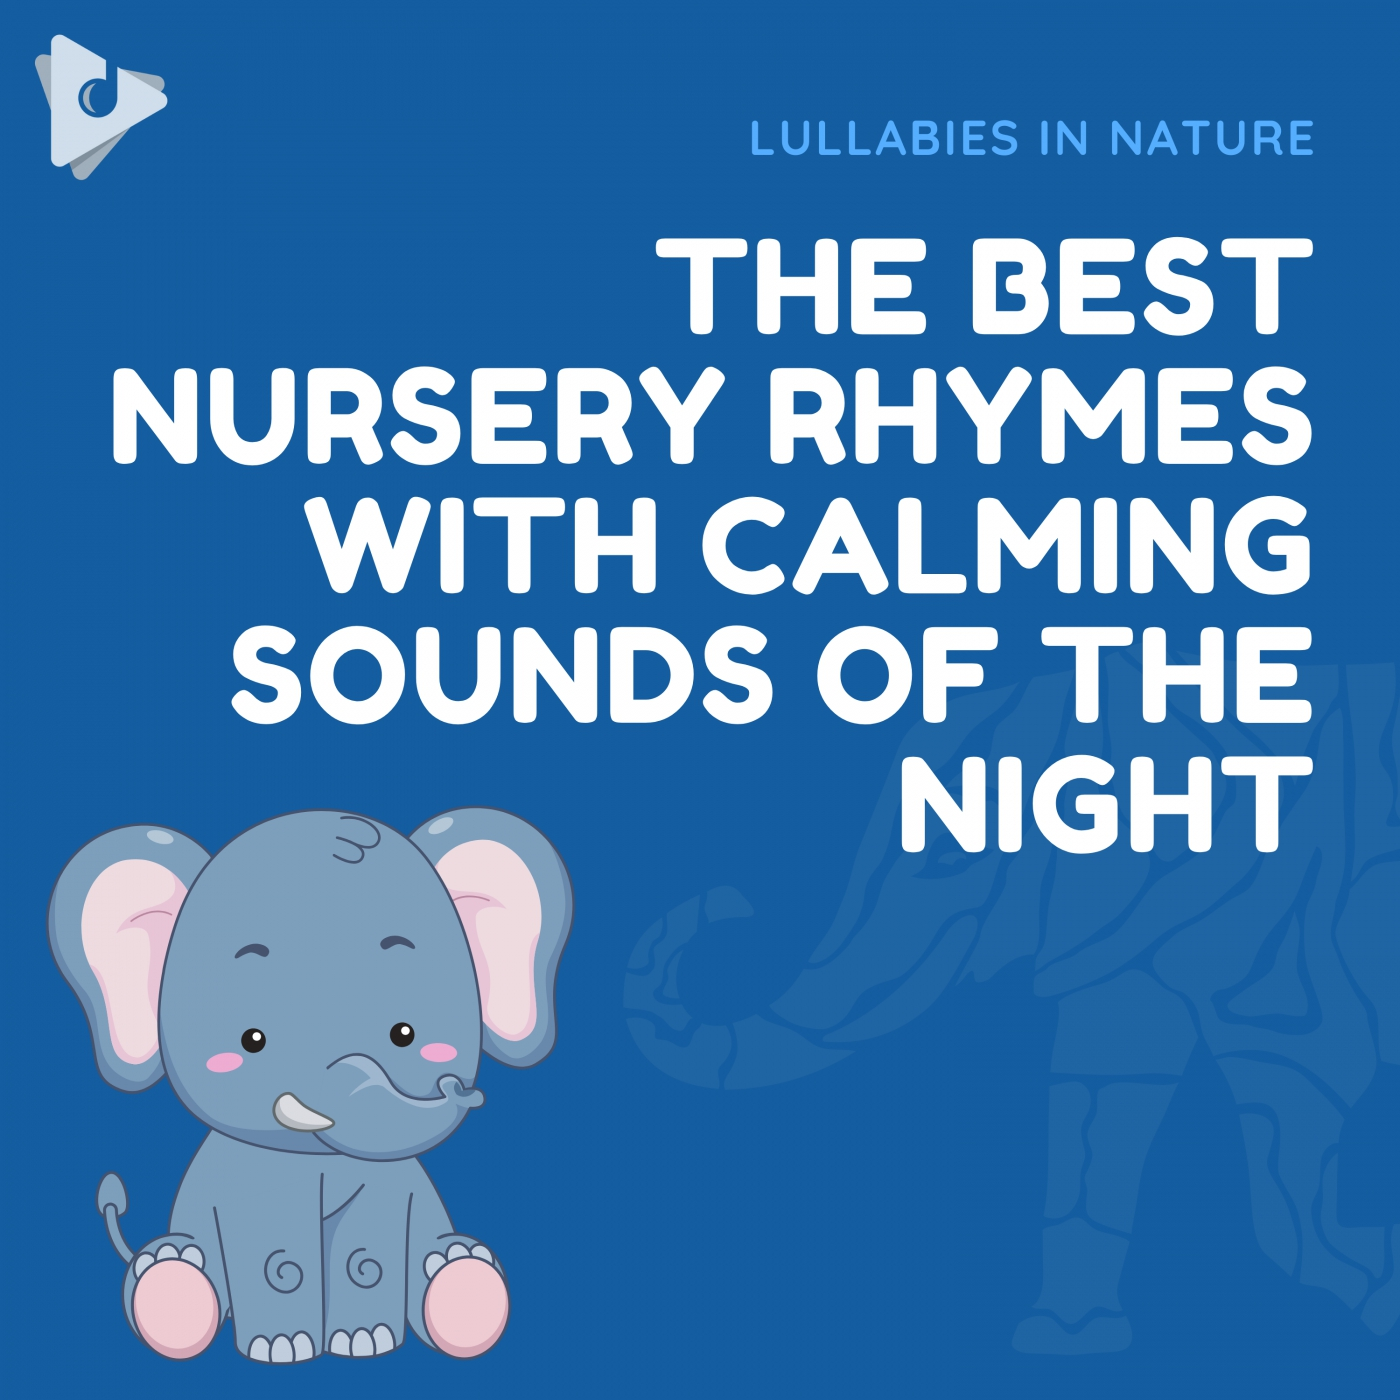 The Best Nursery Rhymes with Calming Sounds of the Night